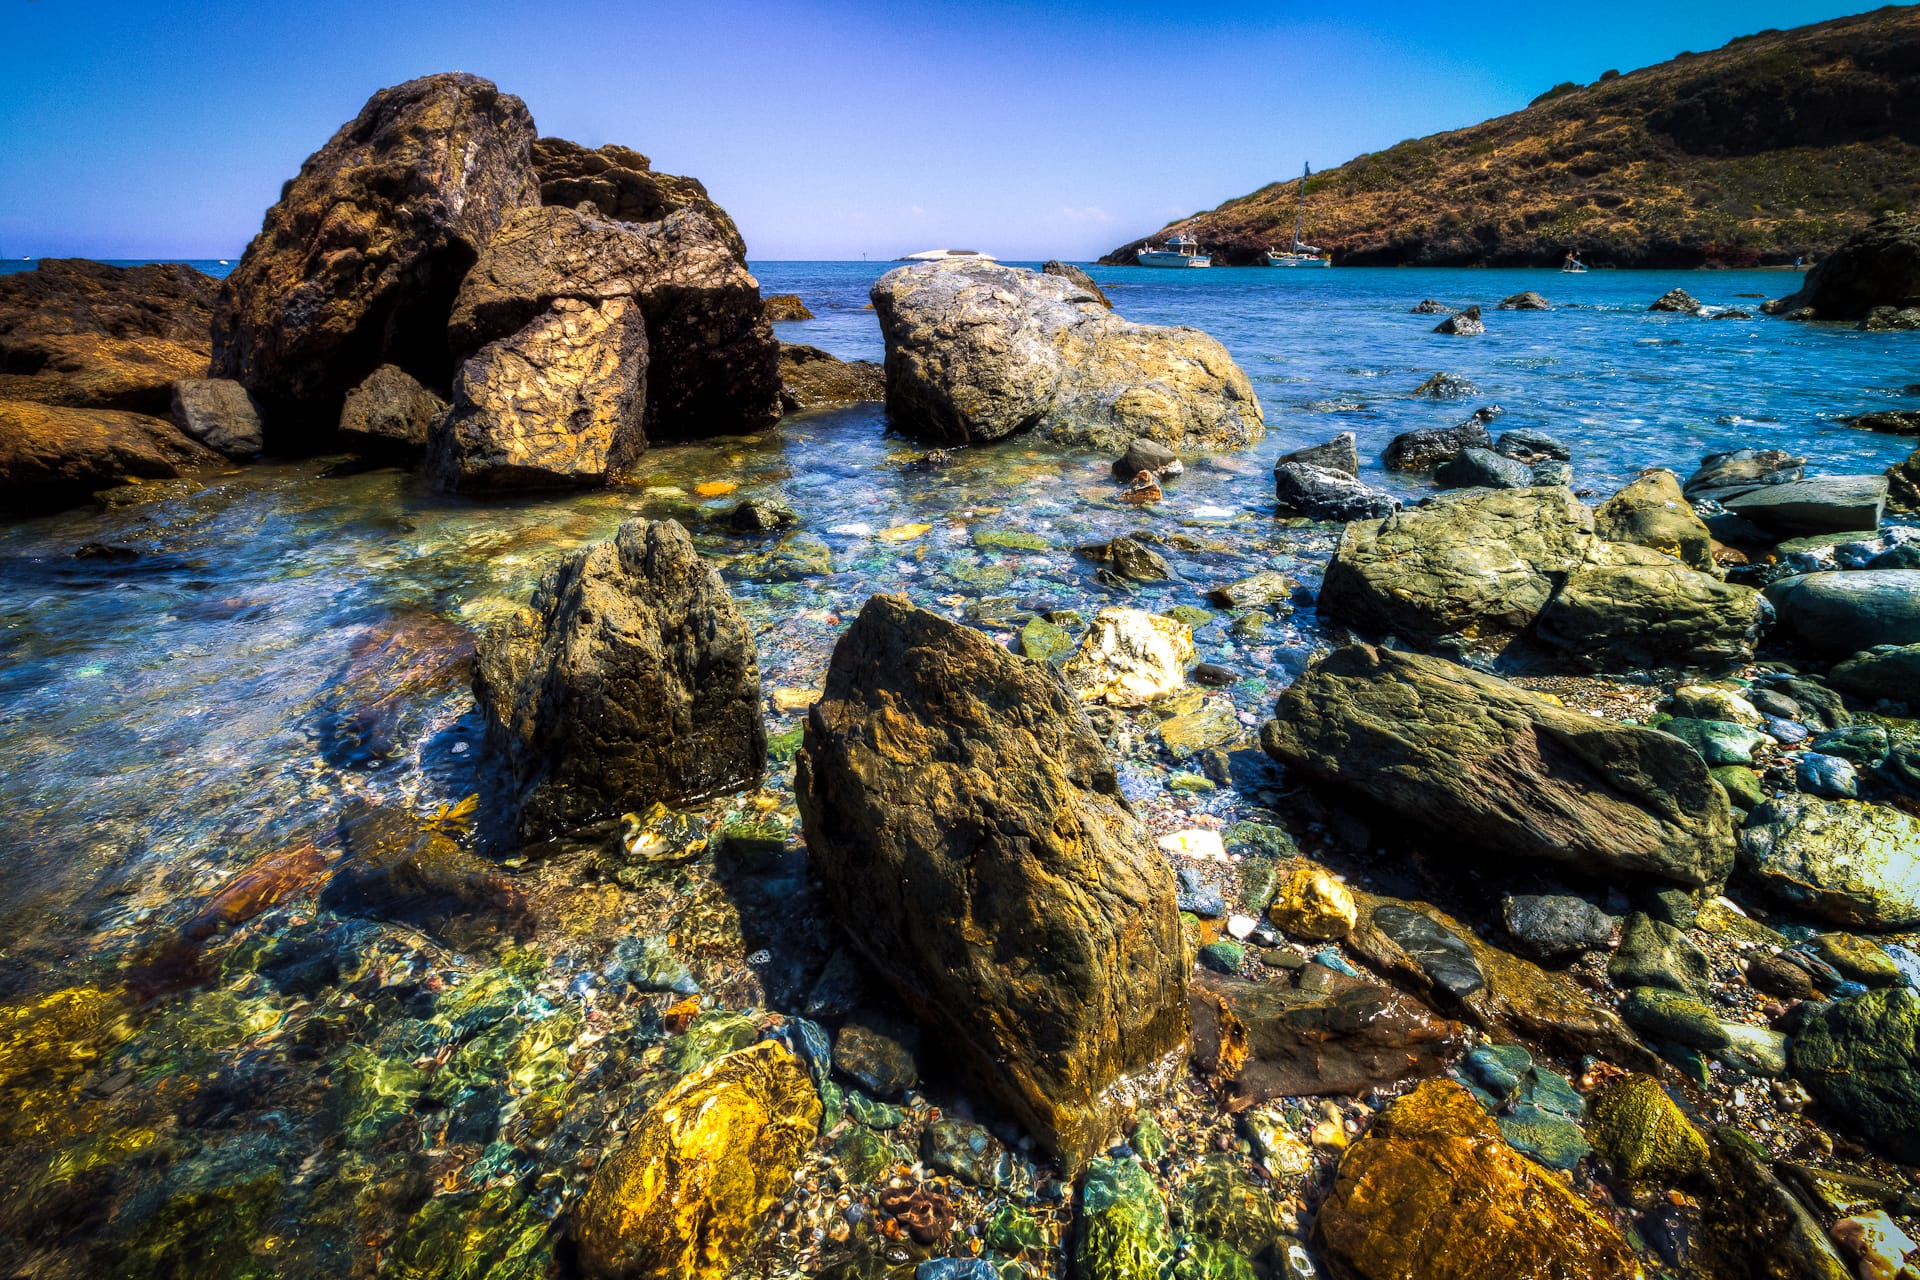 The Beach Rocks of Two Harbors Catalina